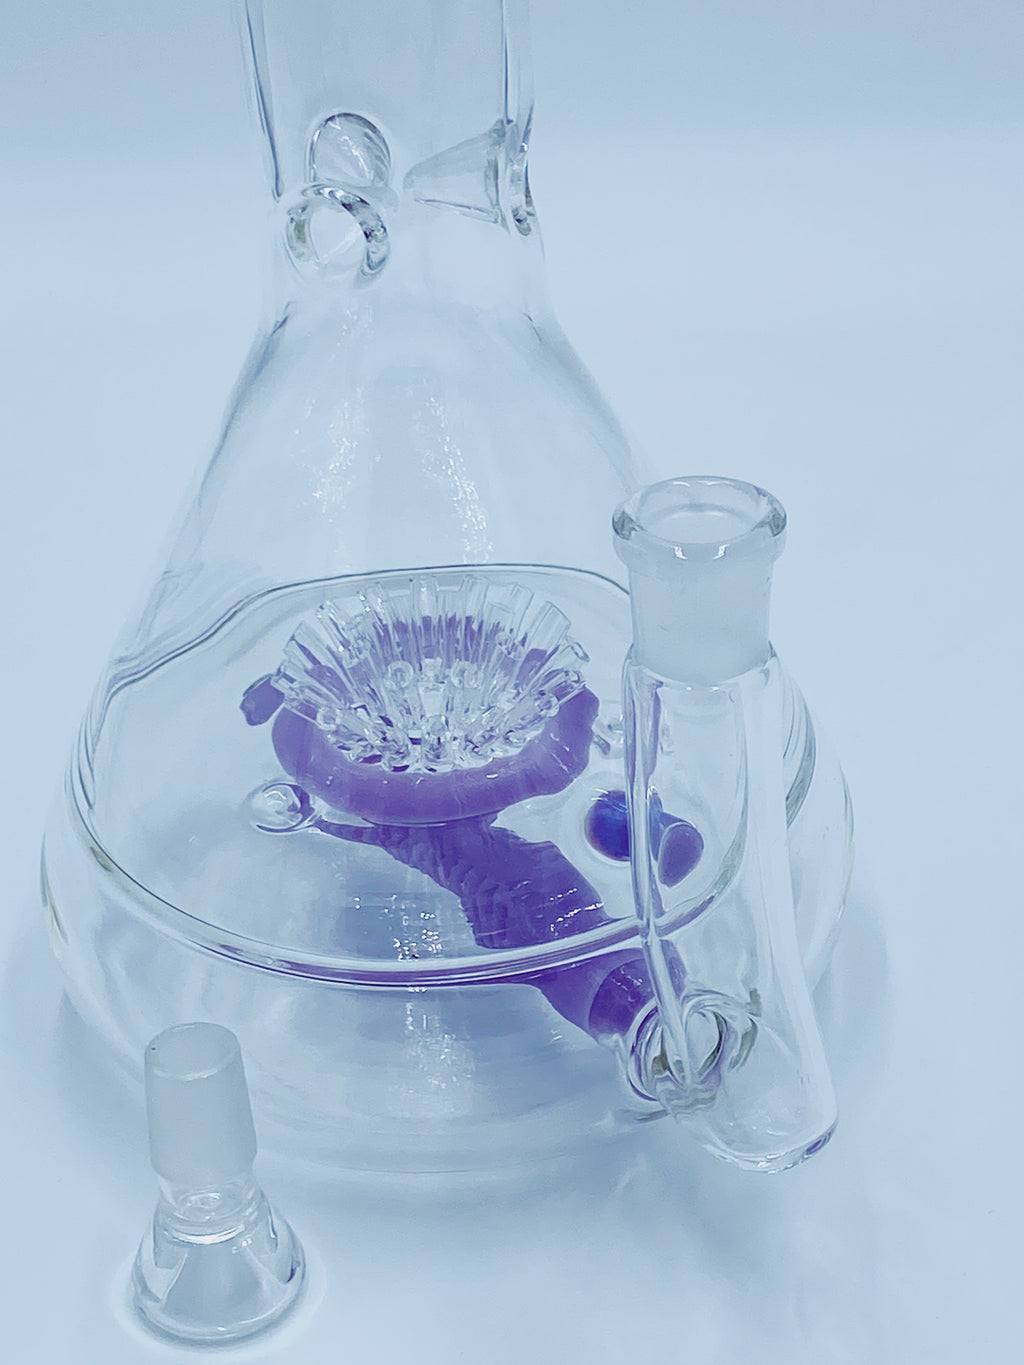 JM FLOW PURPLE SPRINKLER PERCOLATOR - Smoke Country - Land of the artistic glass blown bongs